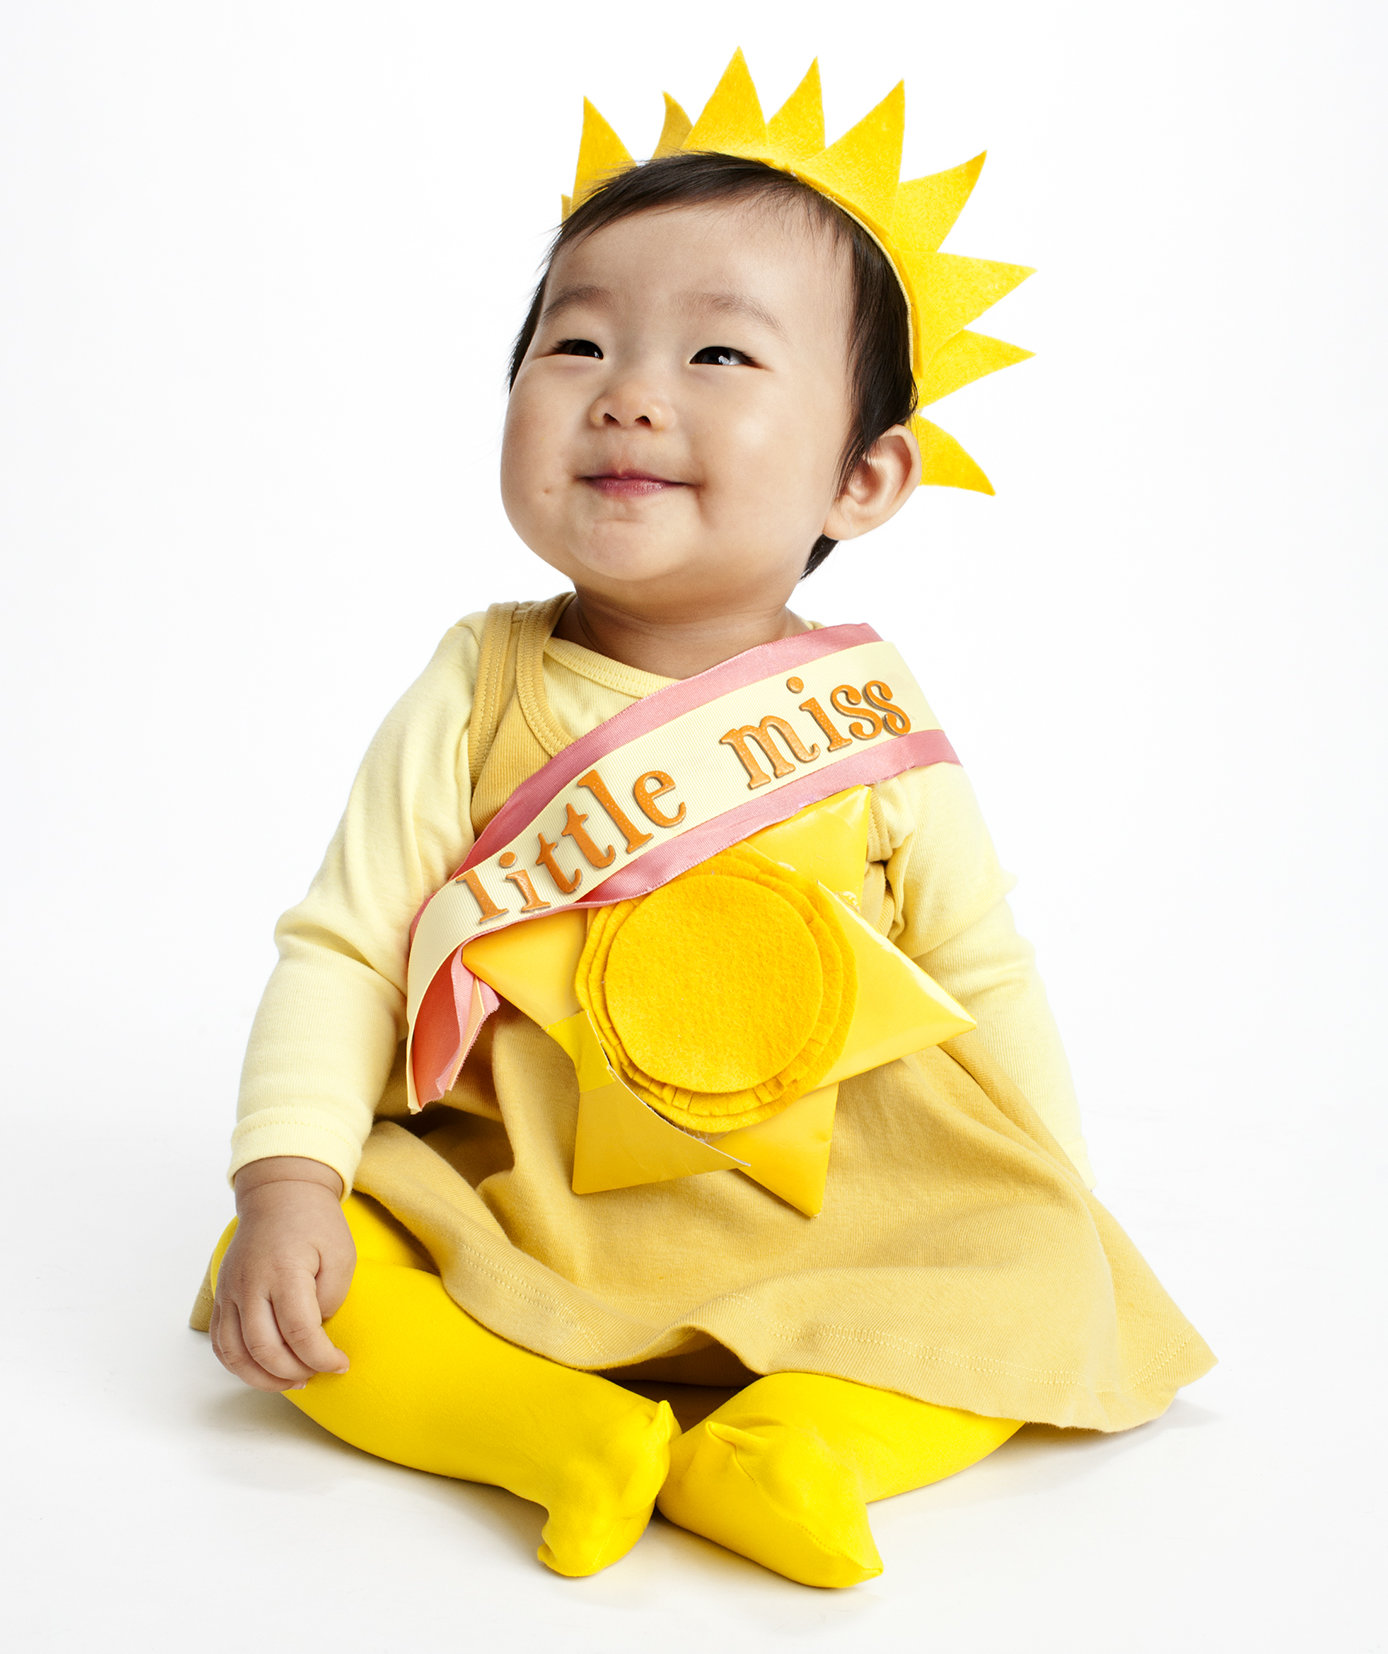 16 easy diy halloween costumes real simple for Simple halloween costumes for kids